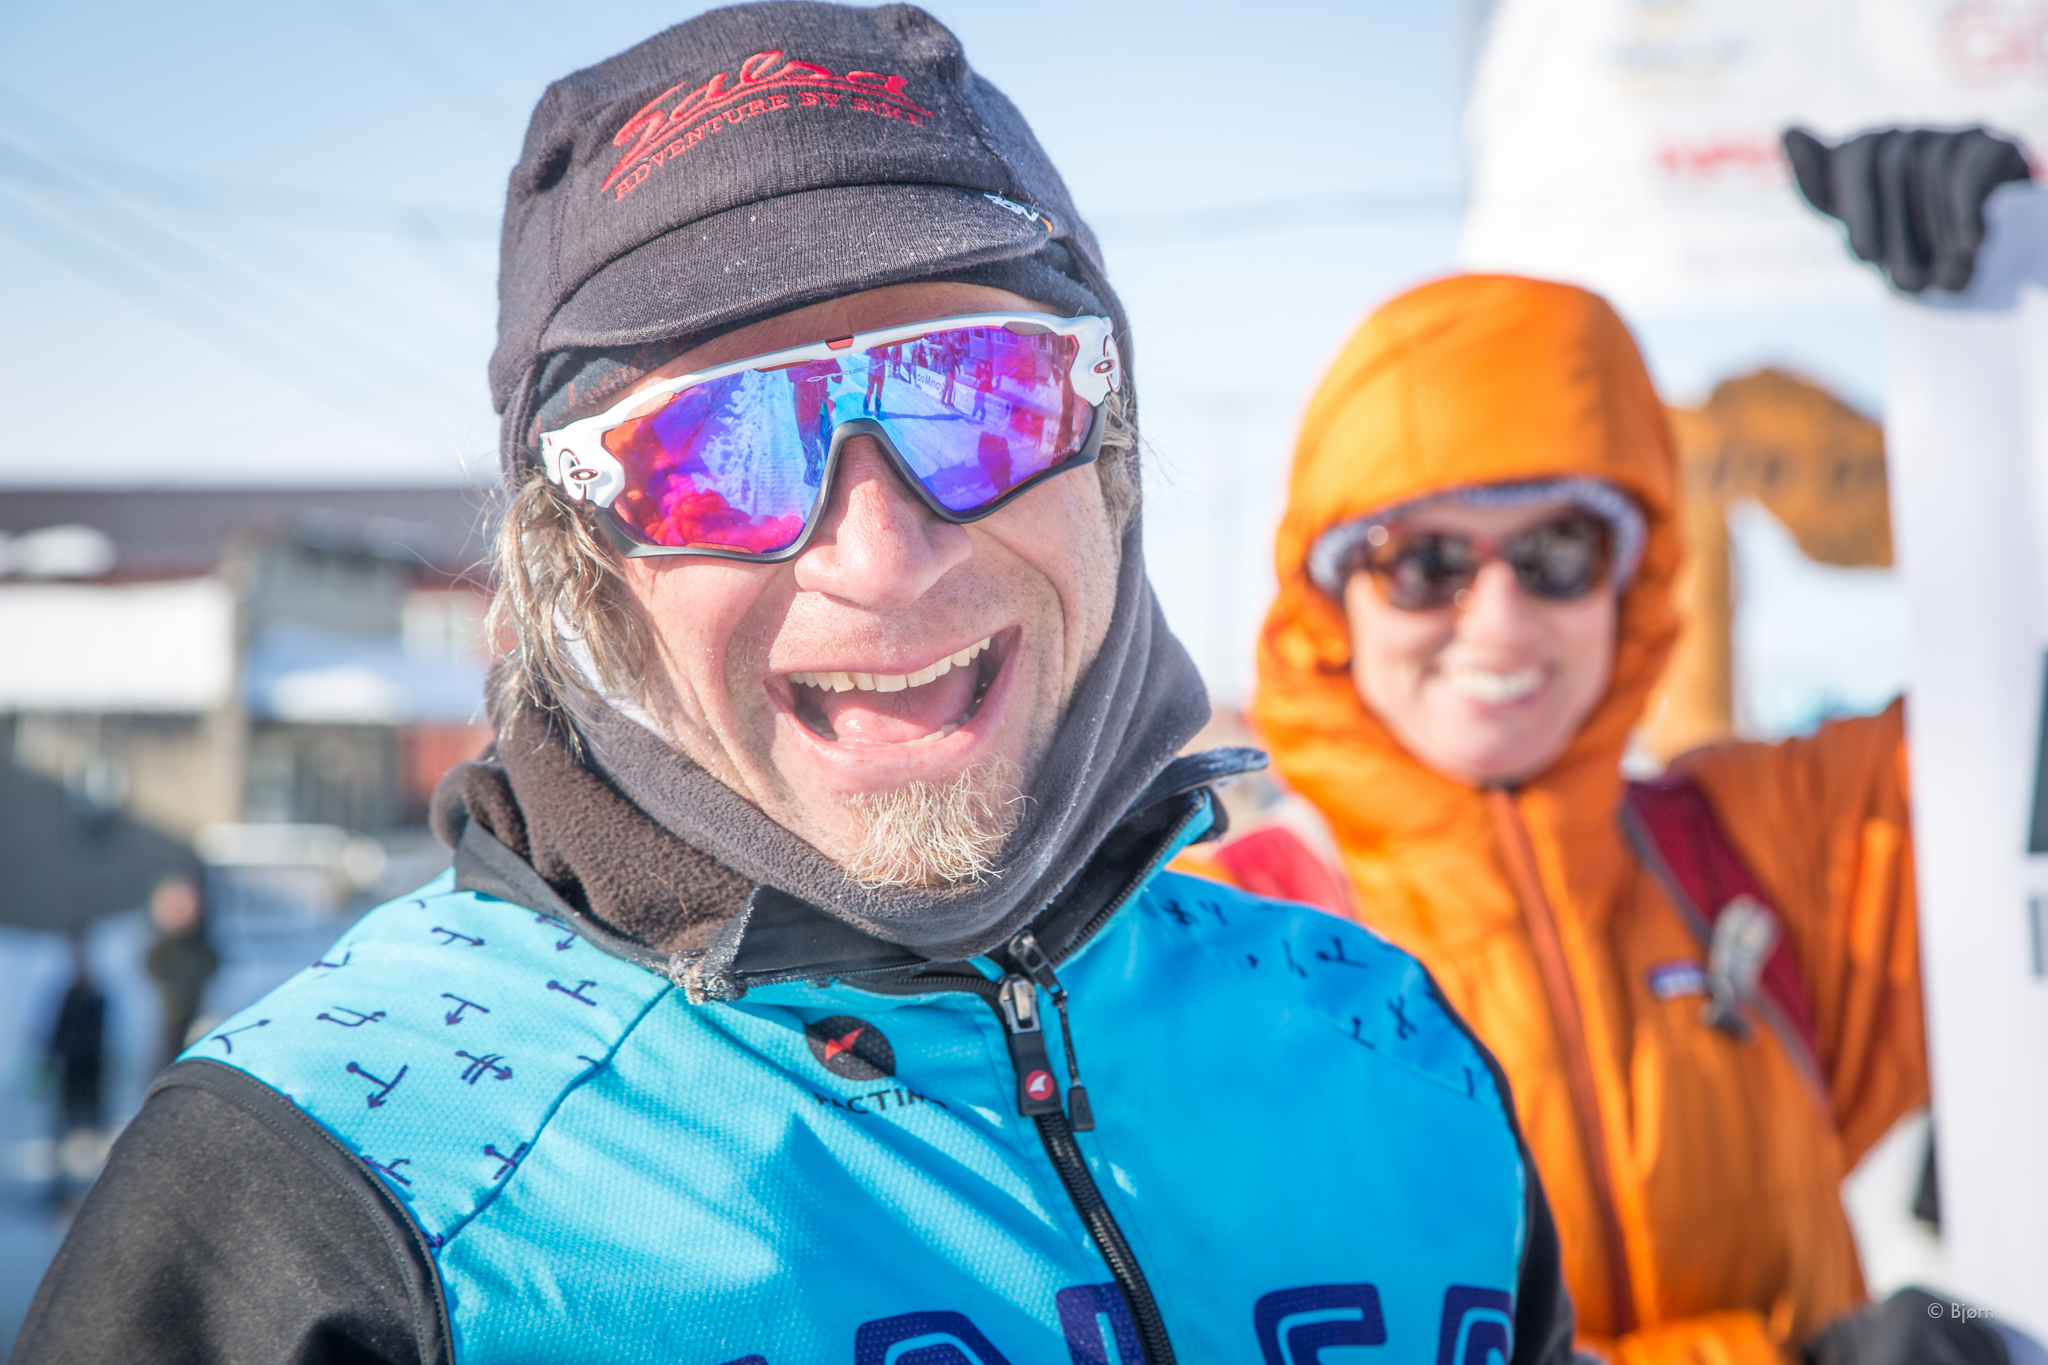 Salsa rider and all around BA, Jay Petervary, was the first human-powered athlete to Nome this year. Congratulations, Jay!